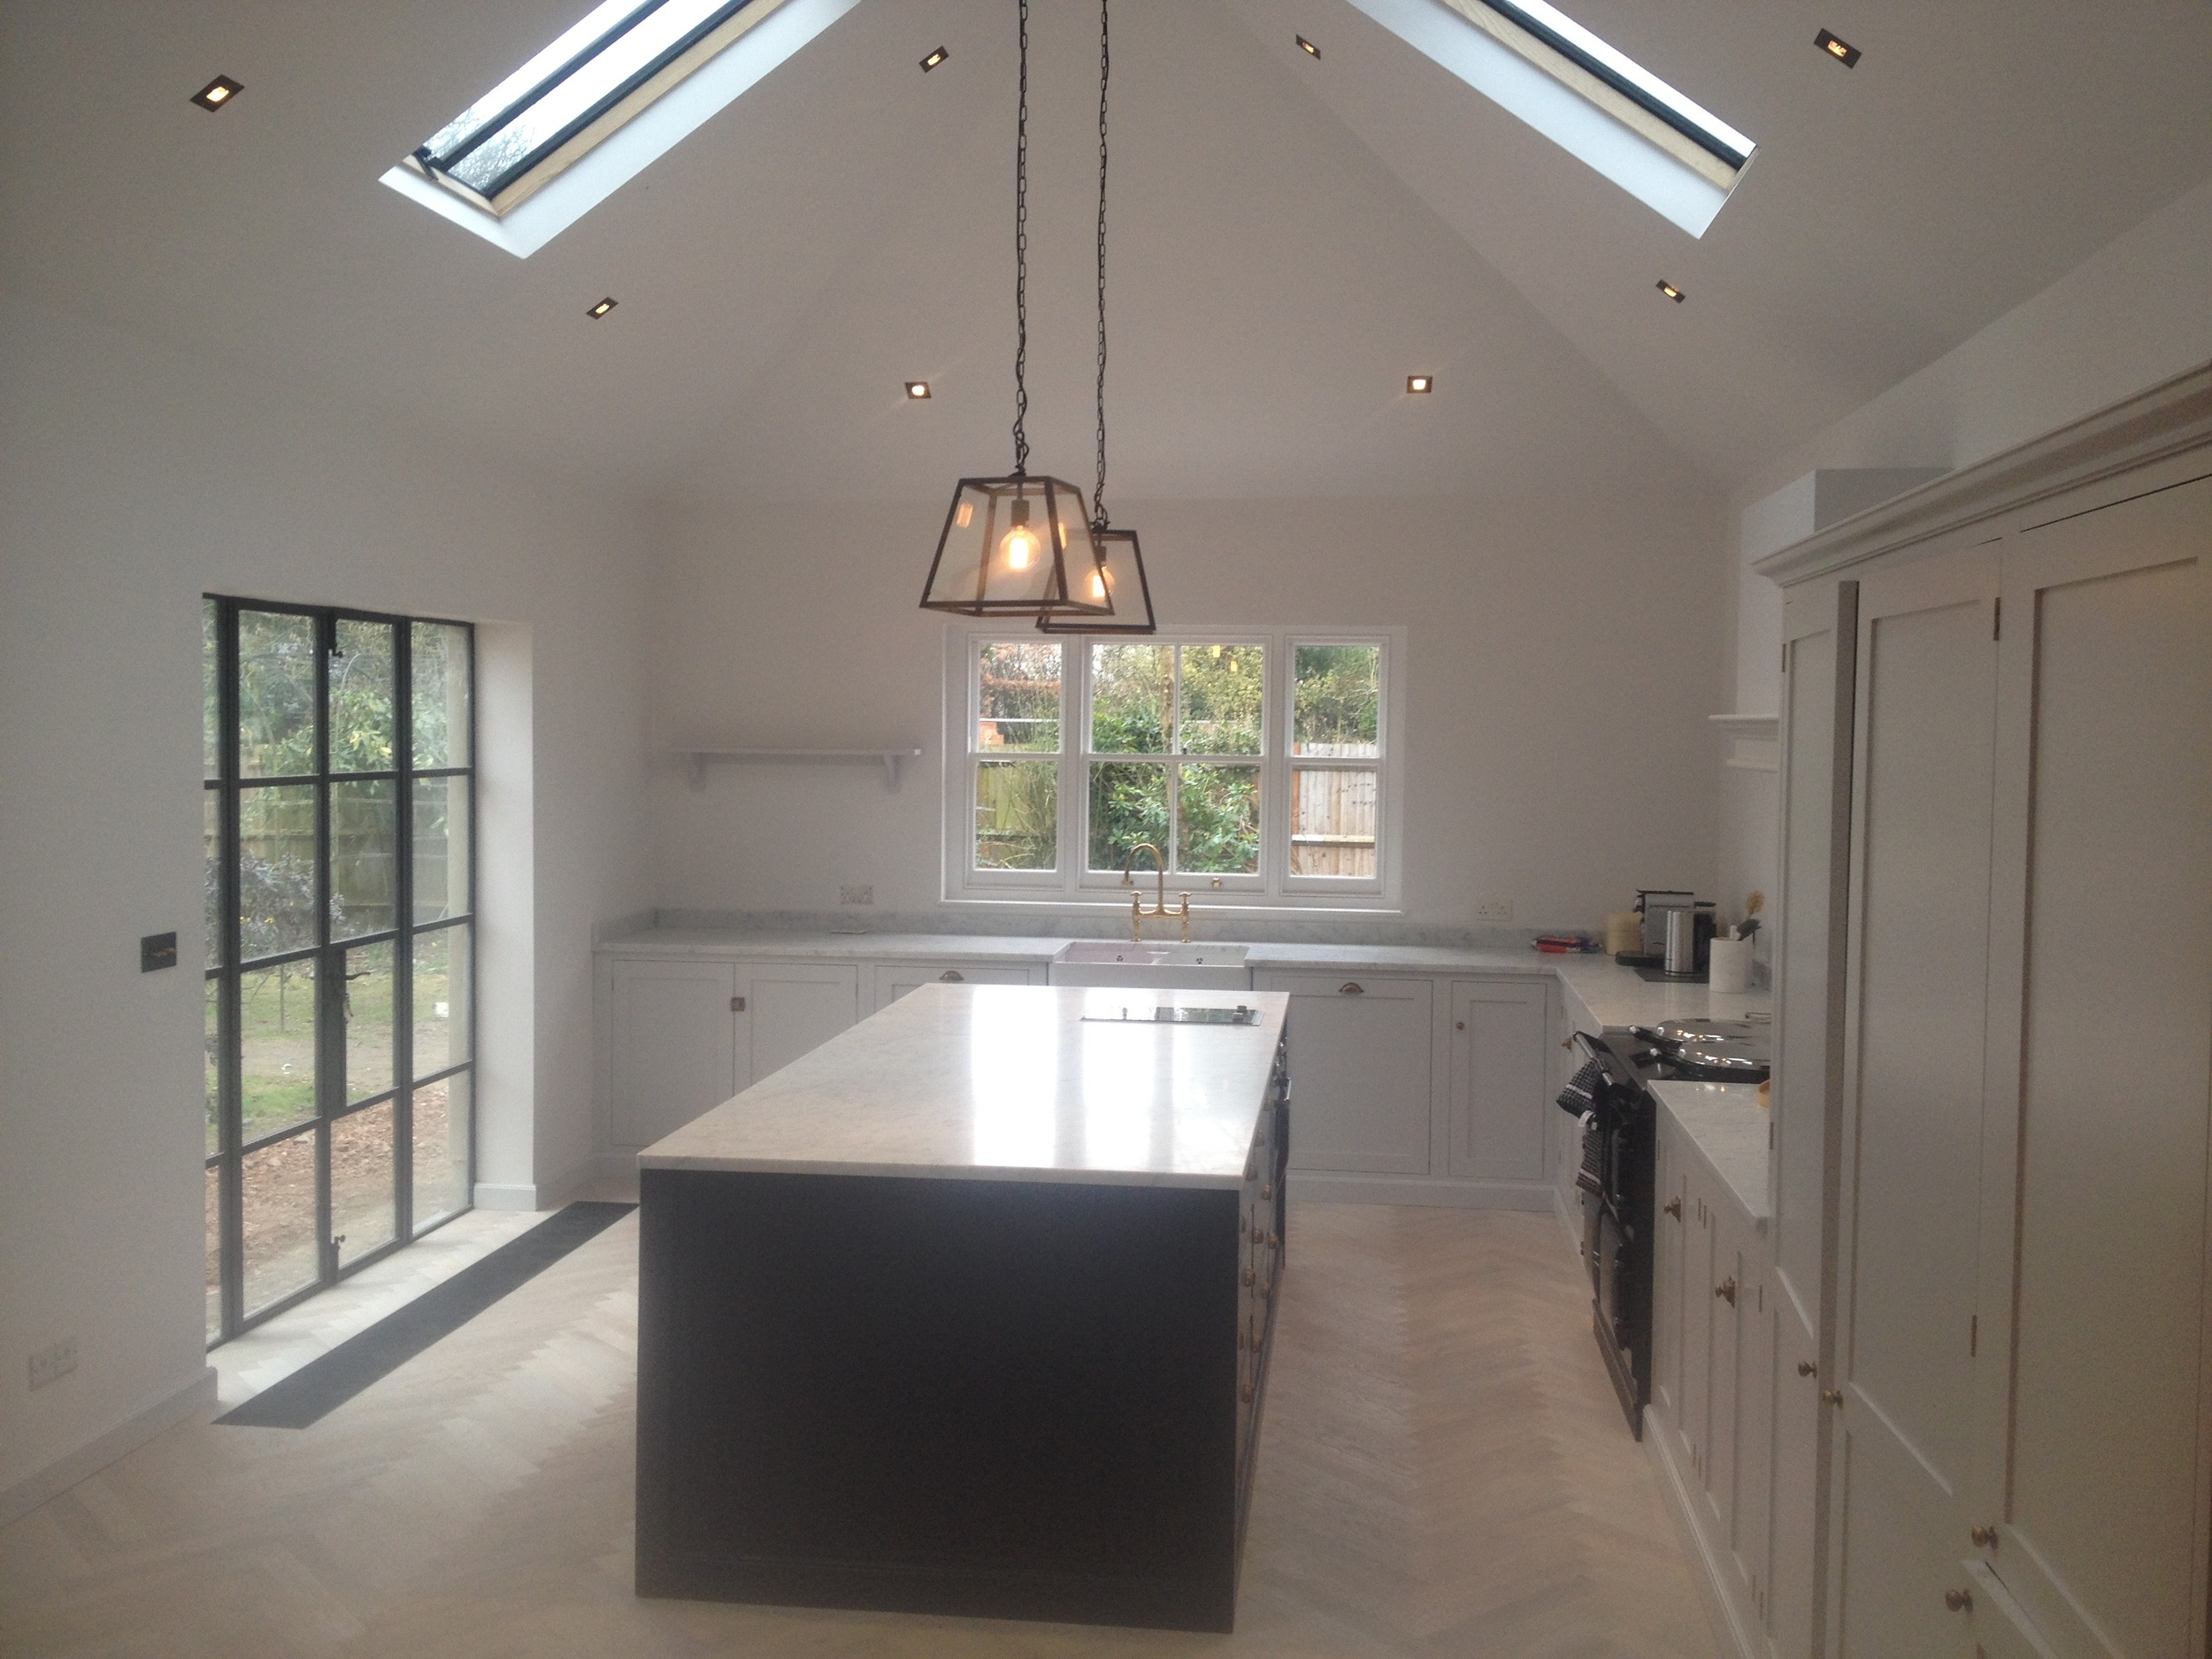 New KItchen fit out with lighitng and power for applainces.jpg